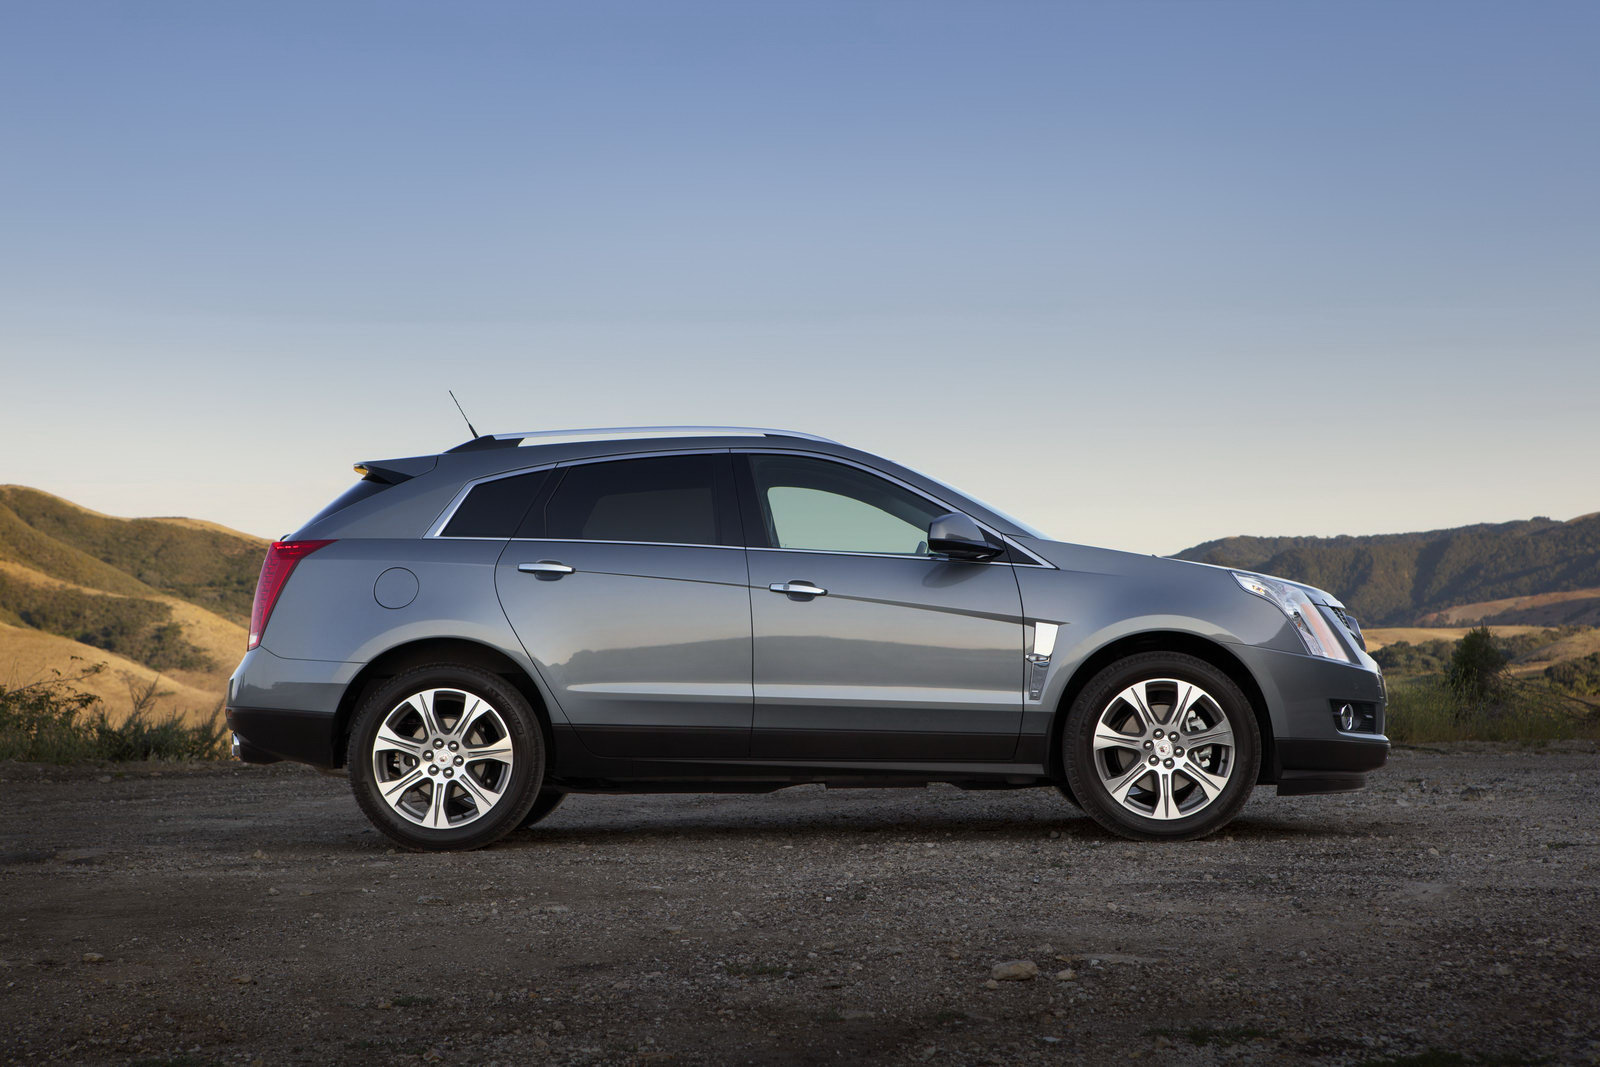 2012 Cadillac SRX Crossover 5 2012 Cadillac SRX Crossover with New Look